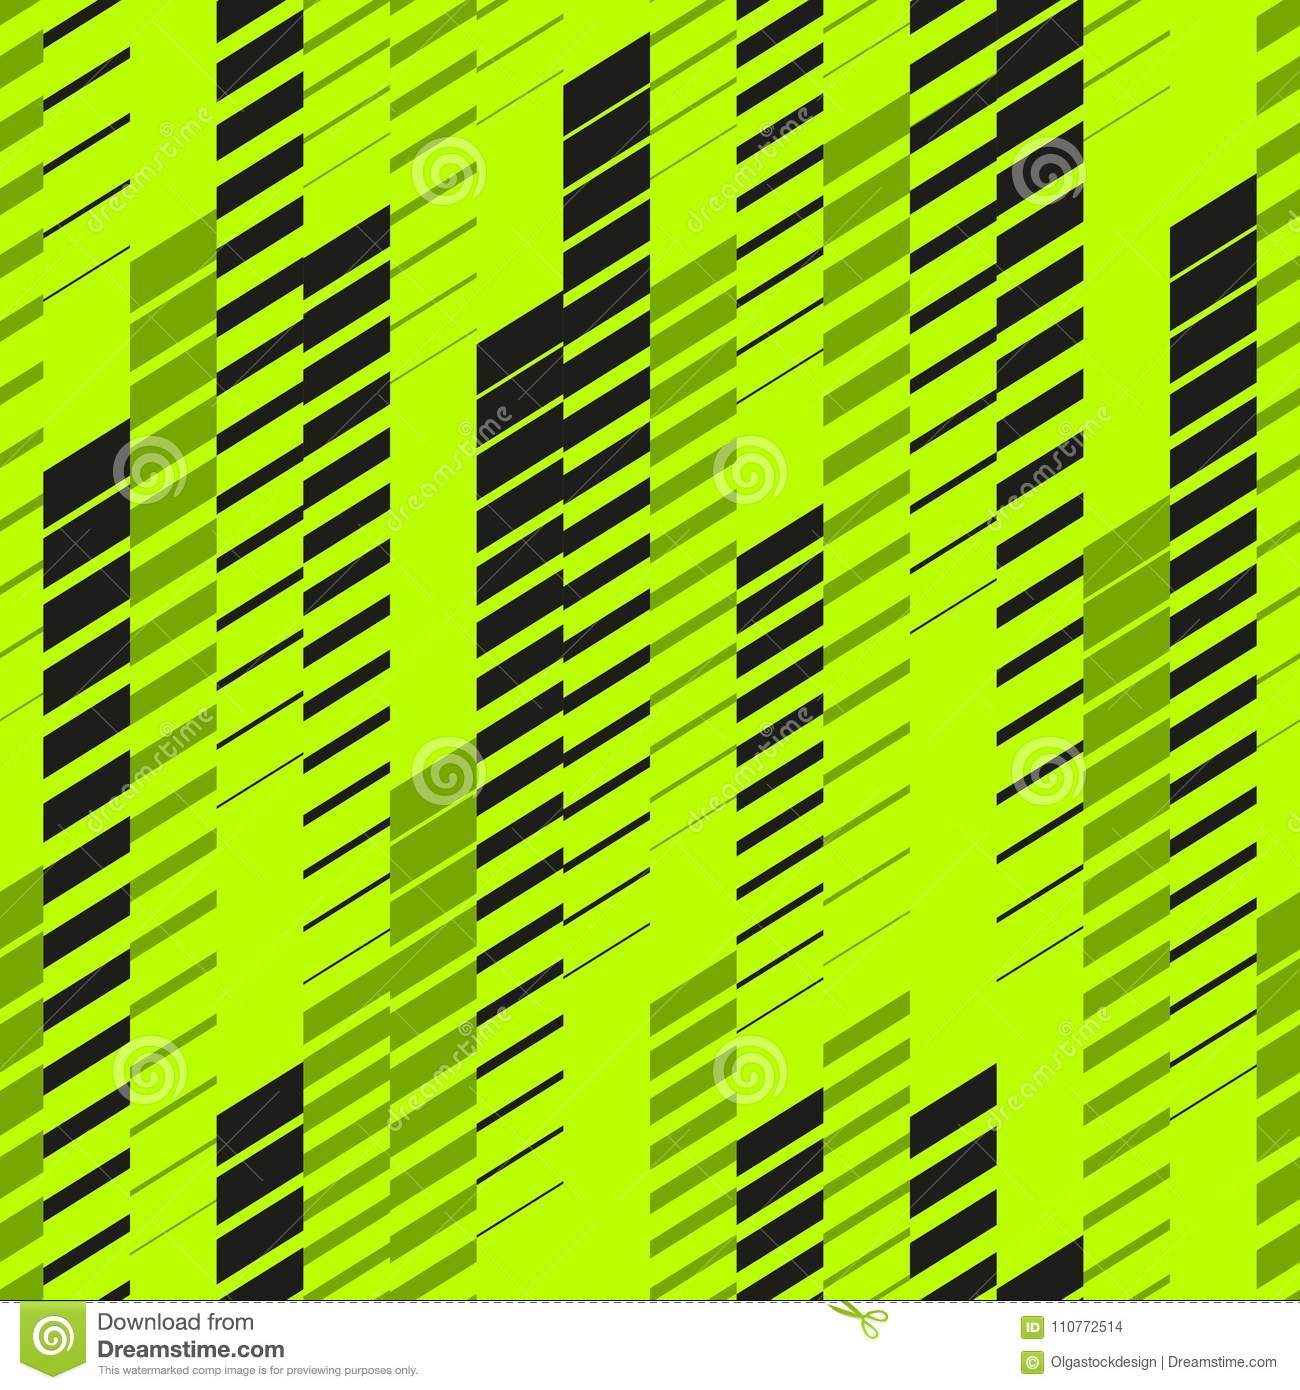 Vector abstract neon sport pattern with fading lines, tracks, halftone stripes. Urban pattern. Neon pattern.